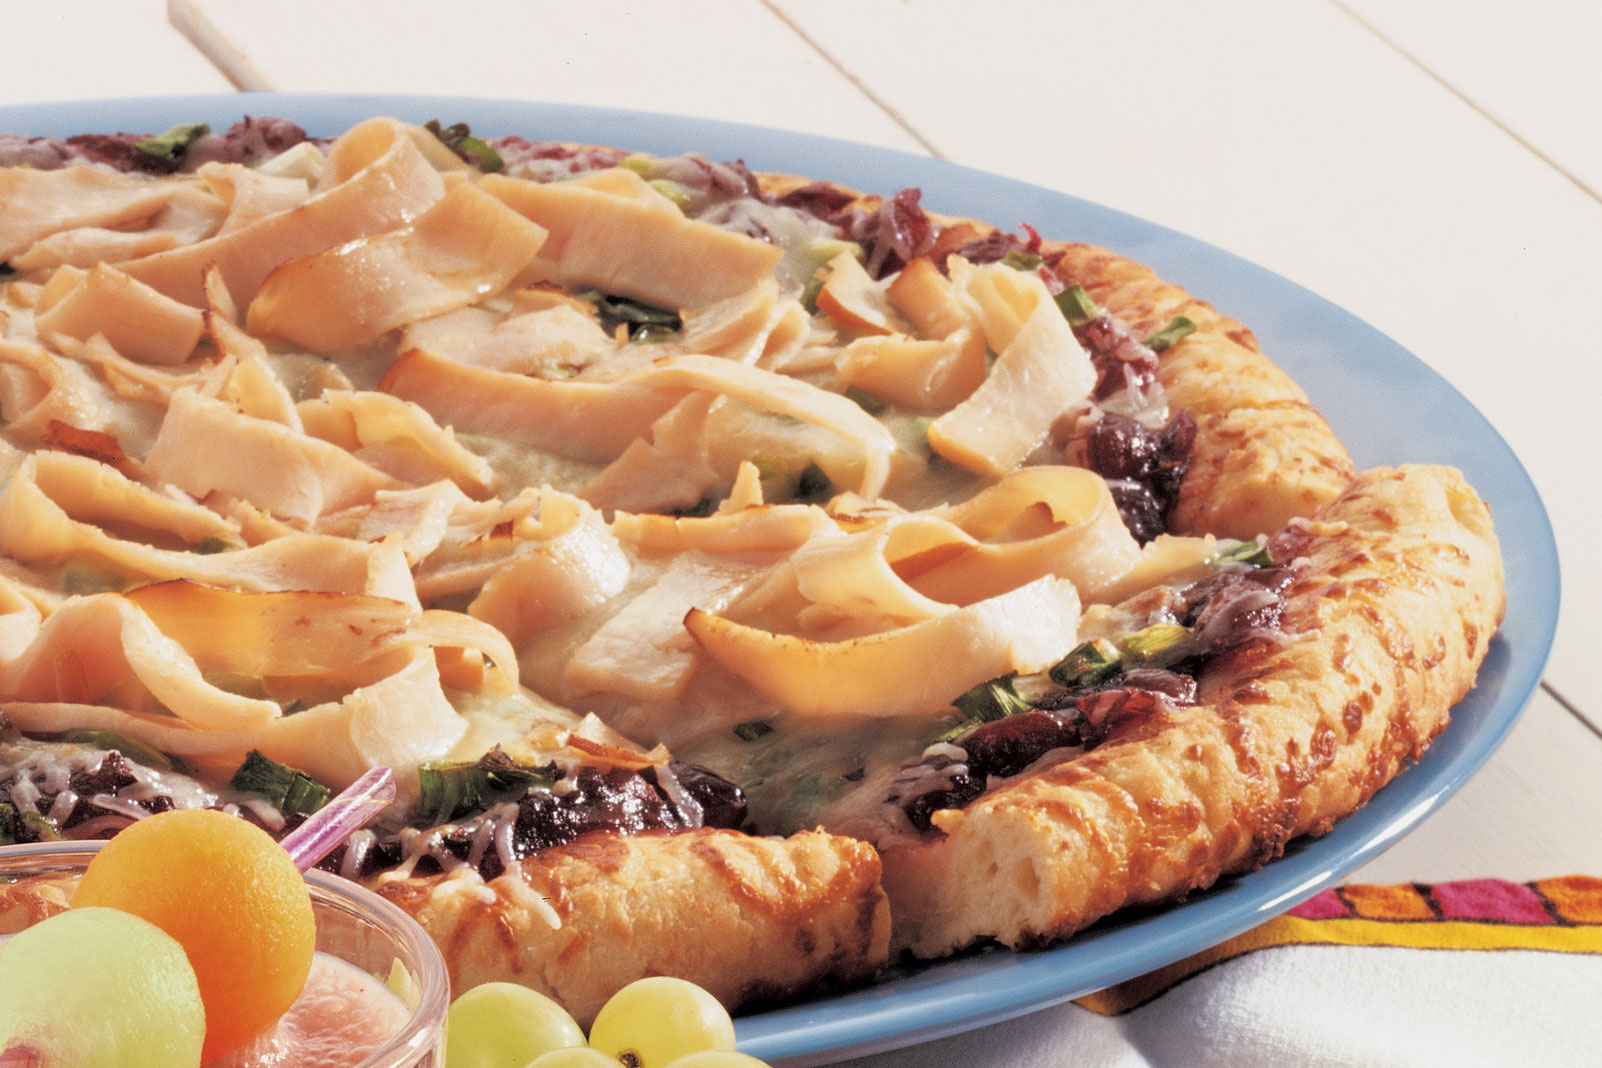 Smoked Turkey and Cranberry Gourmet Pizza